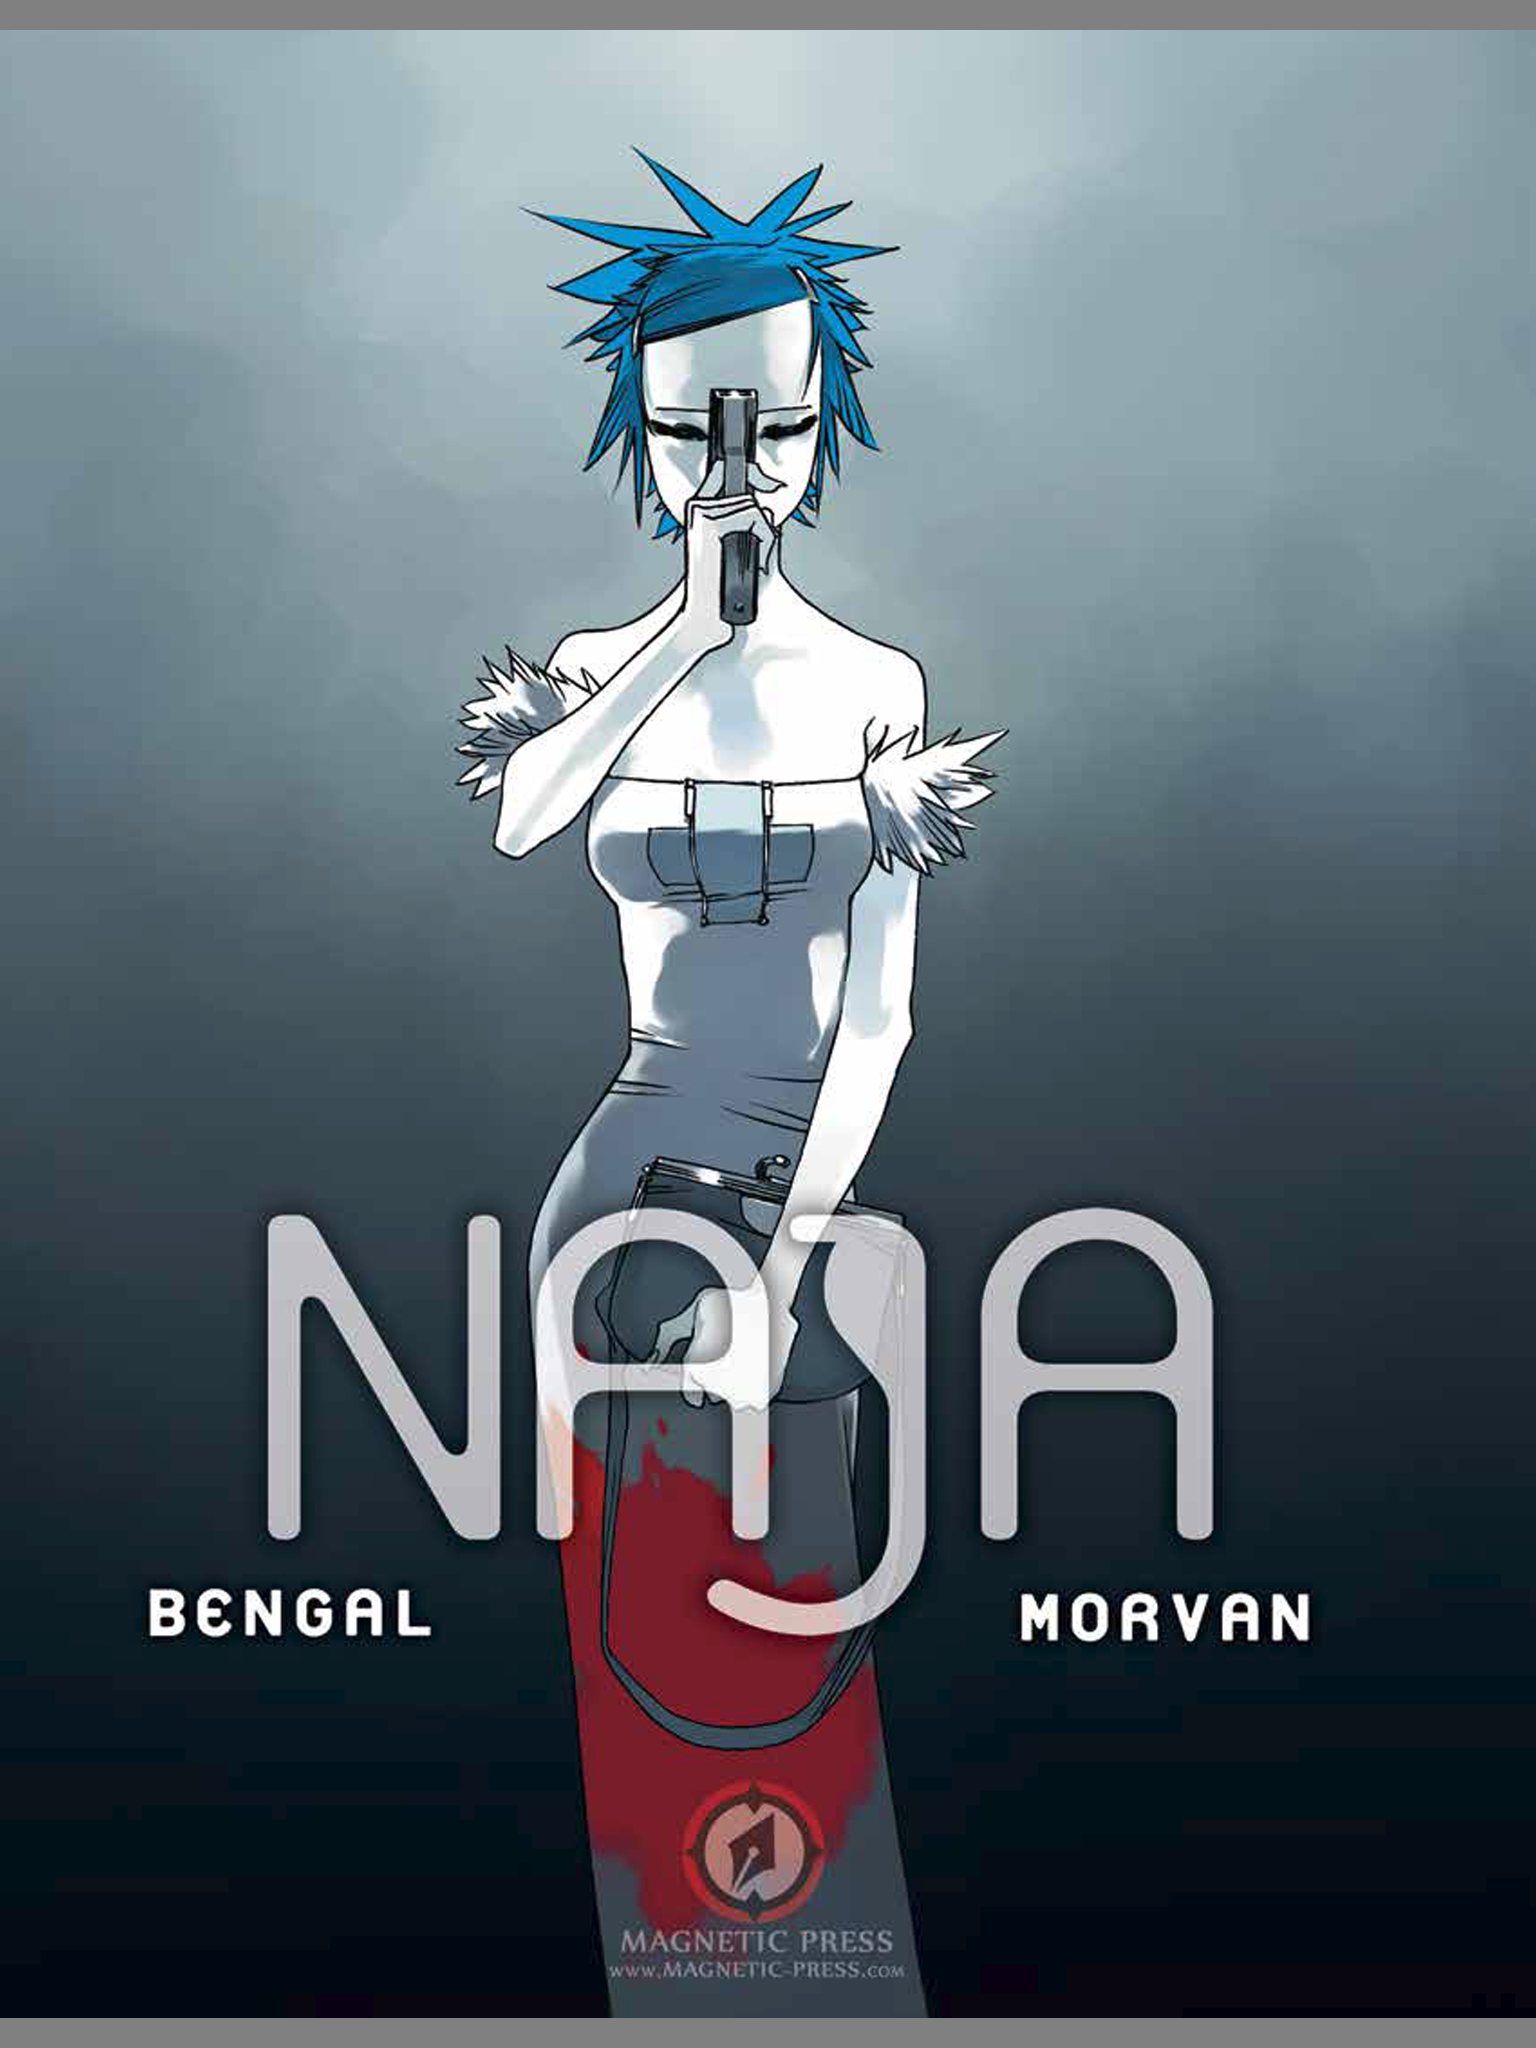 Review | Meka and Naja by J.D. Morvan and Bengal